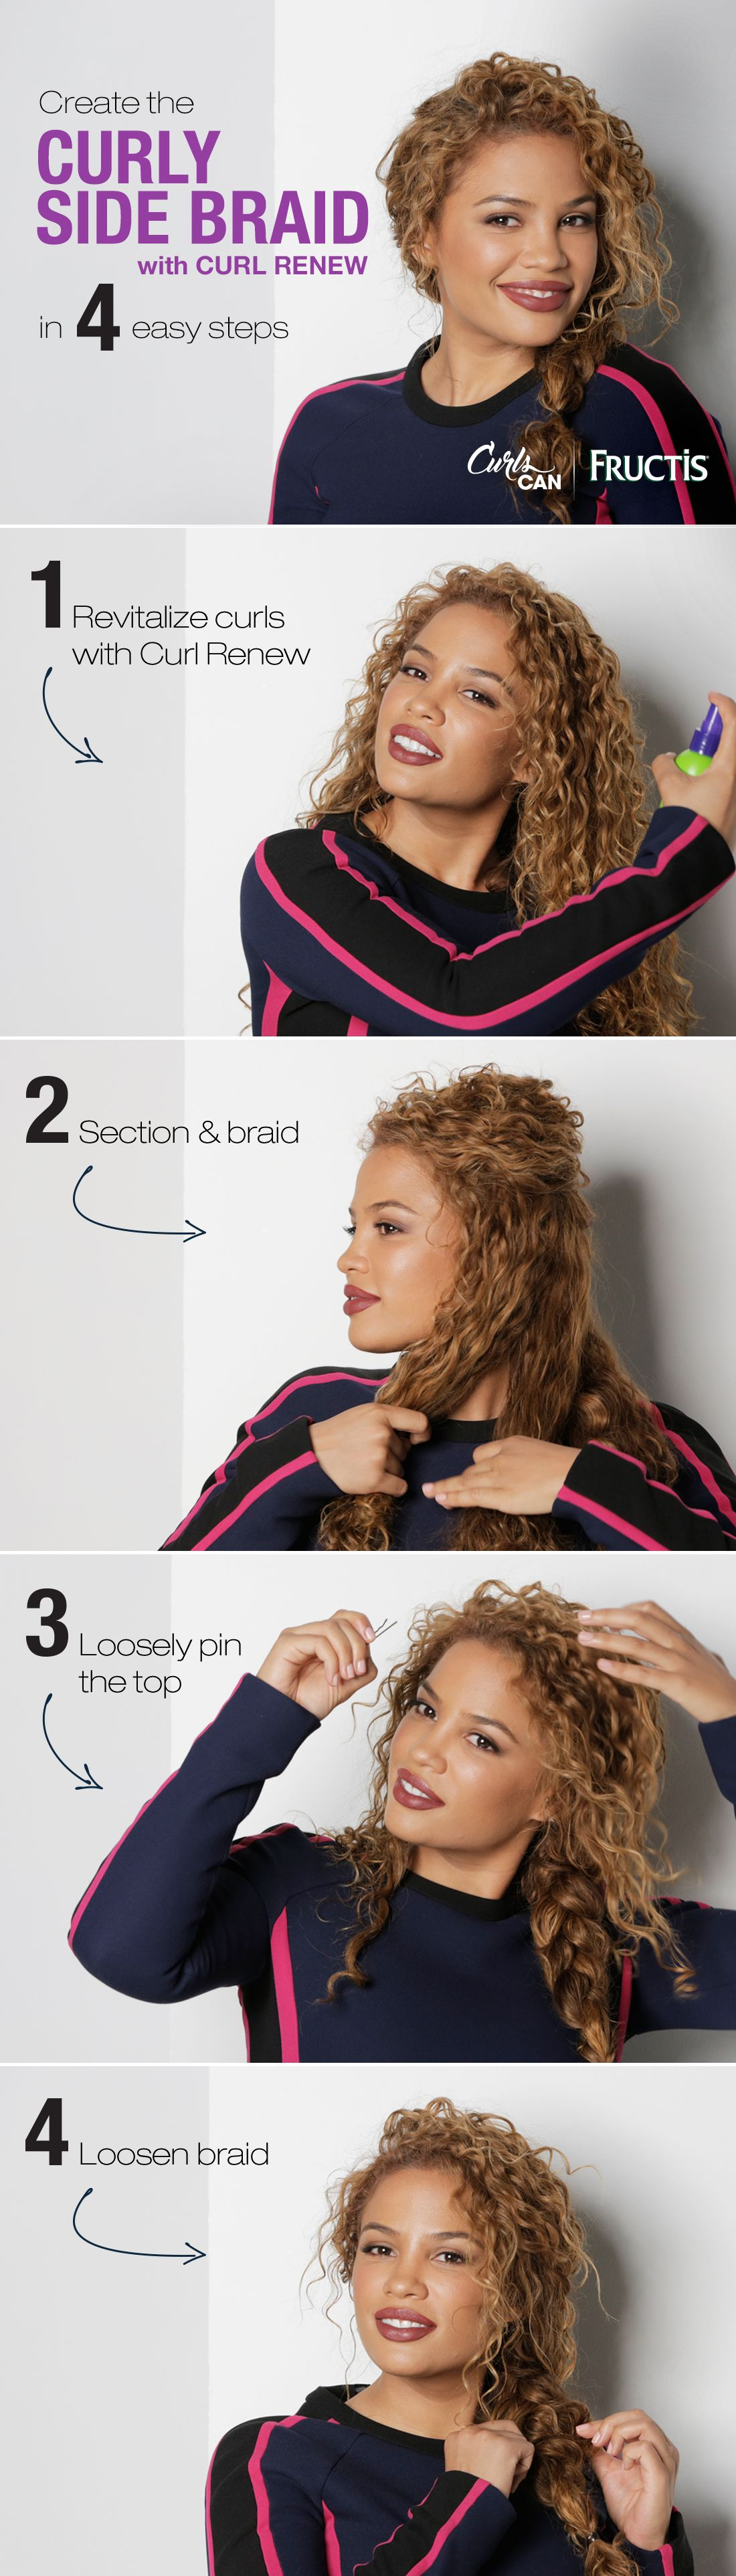 Curly Hair Is Perfect For A Messy Braid Watch Andrea S